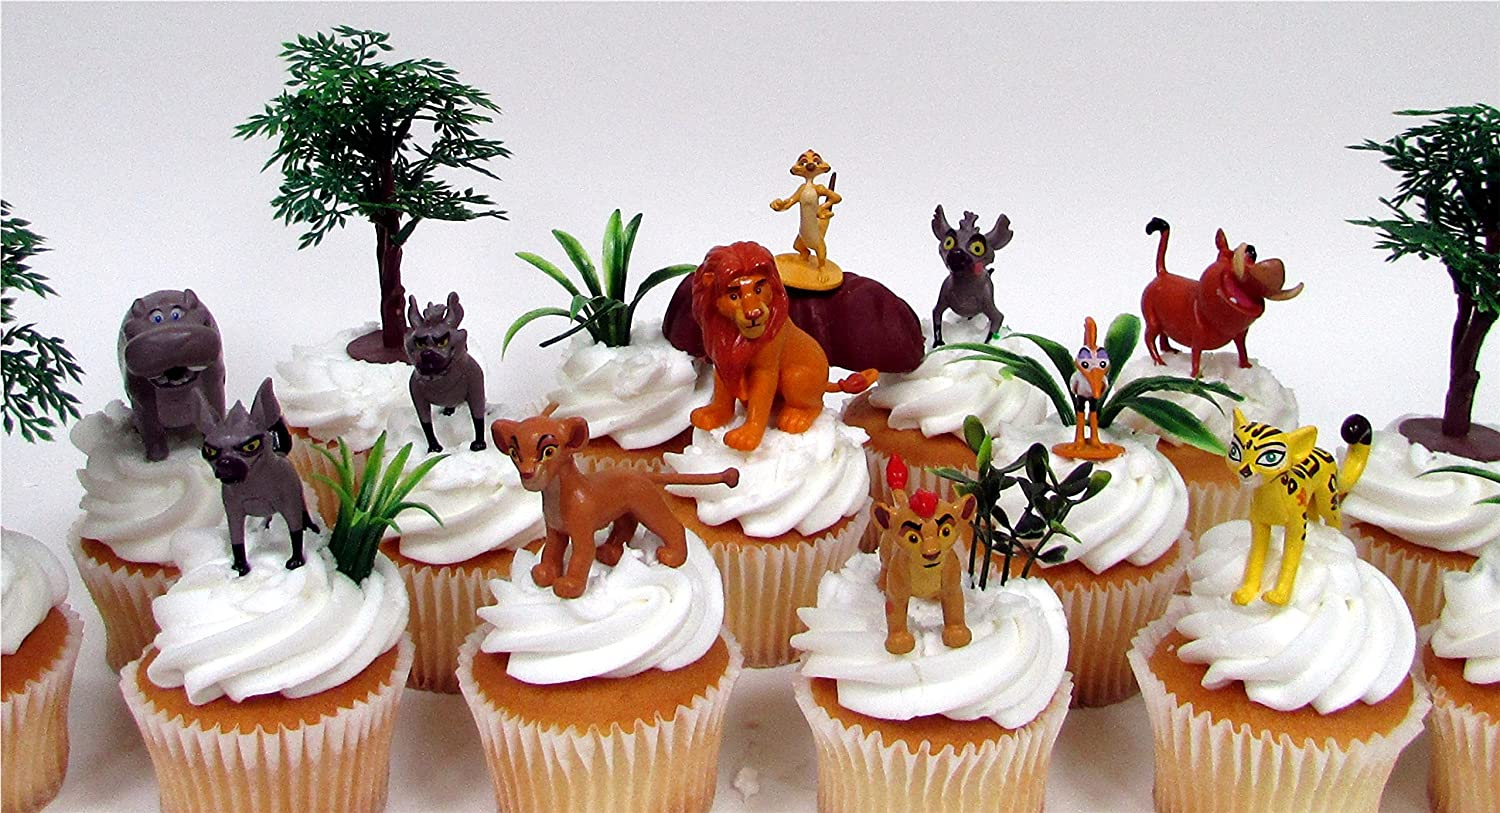 Decorative Themed Accessories Figures Average 1.5 to 2 DISNEY LION KING LION GUARD 20 Piece Birthday Cupcake Topper Set Featuring Kion and Pride Land Friends